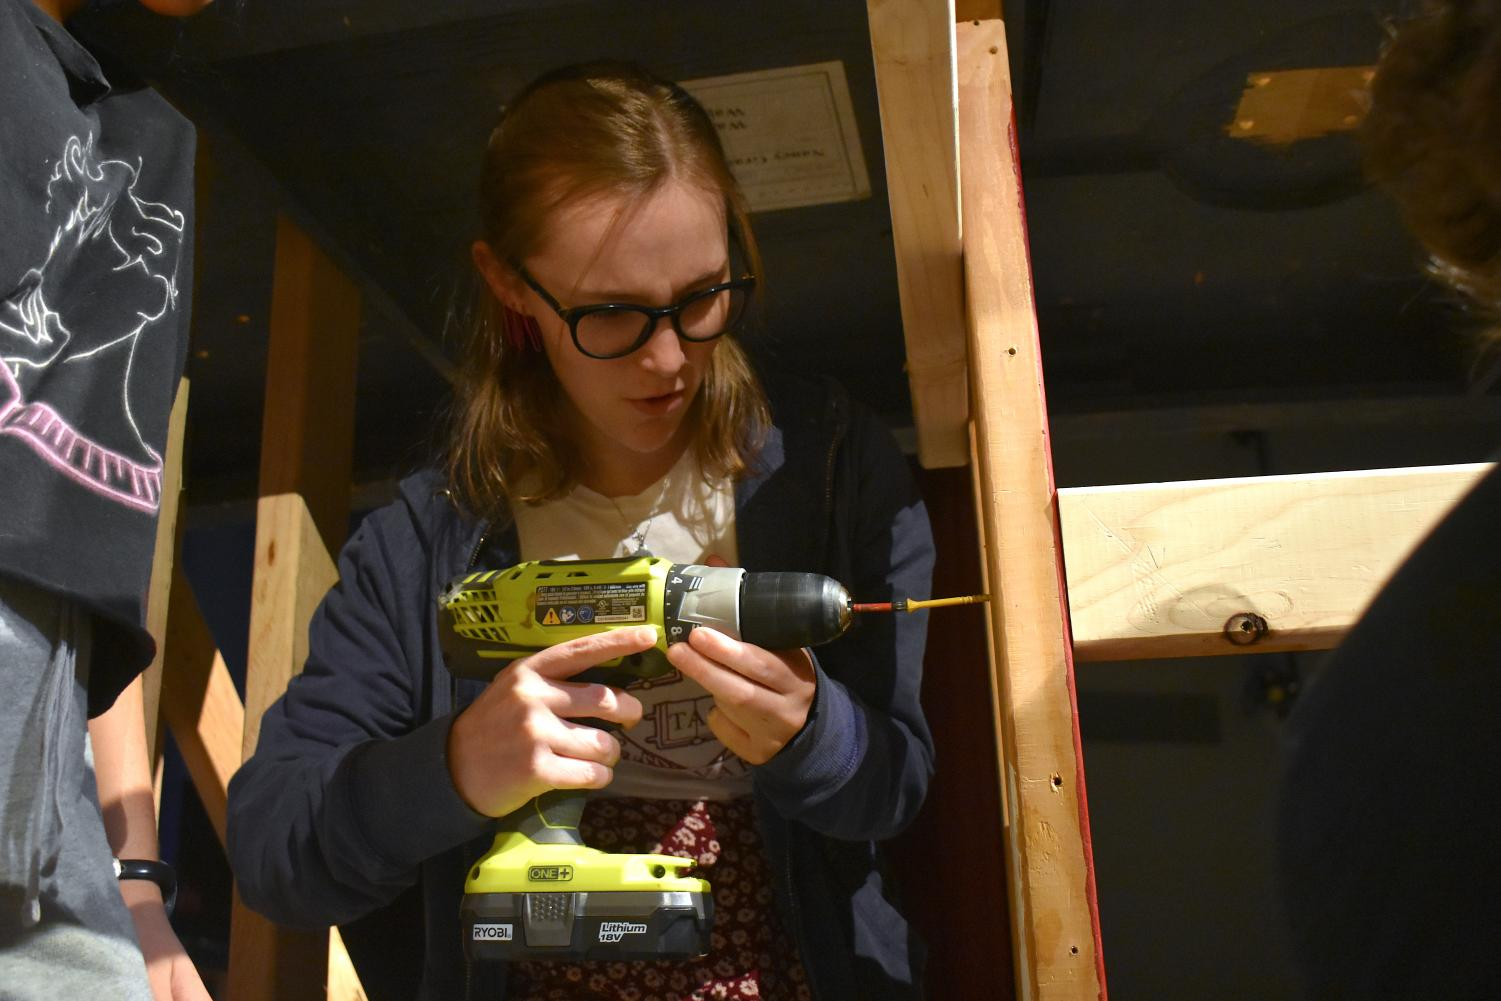 Senior+Elise+Livius+screws+two+wood+planks+together+for+a+set+structure+using+an+electric+screwdriver.+Livius+is+master+carpenter+on+the+crew.